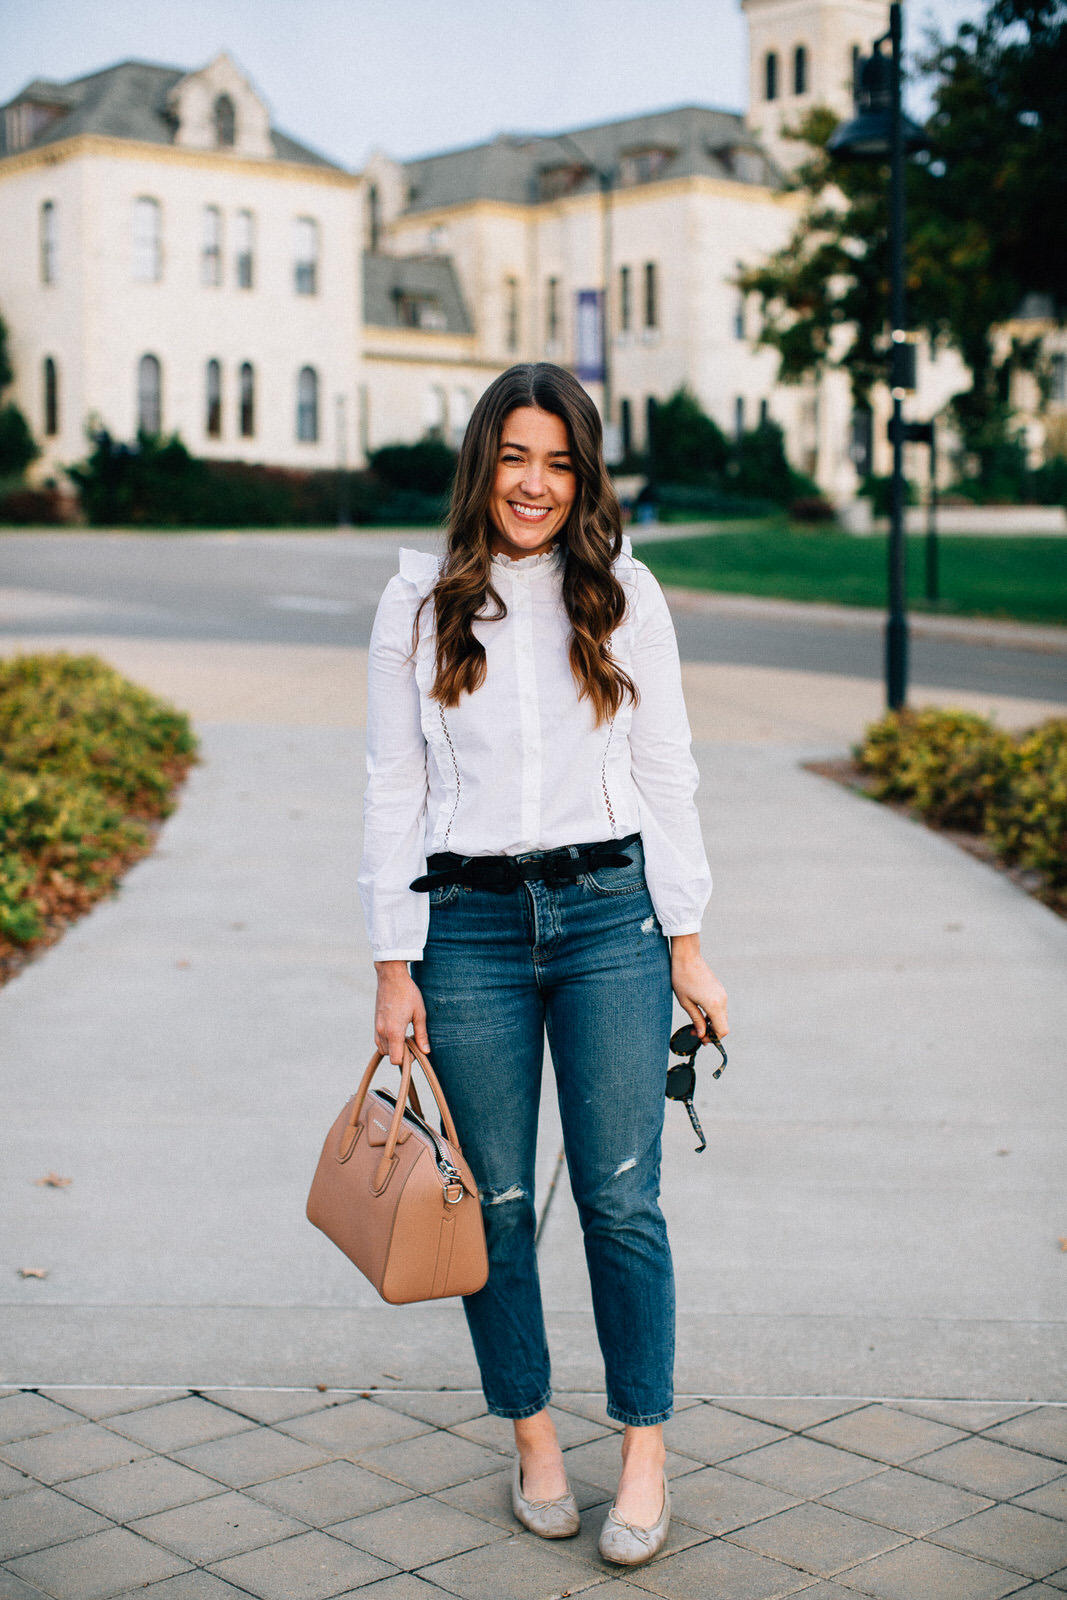 classic-pieces-from-topshop-at-nordstrom-11-of-16-1